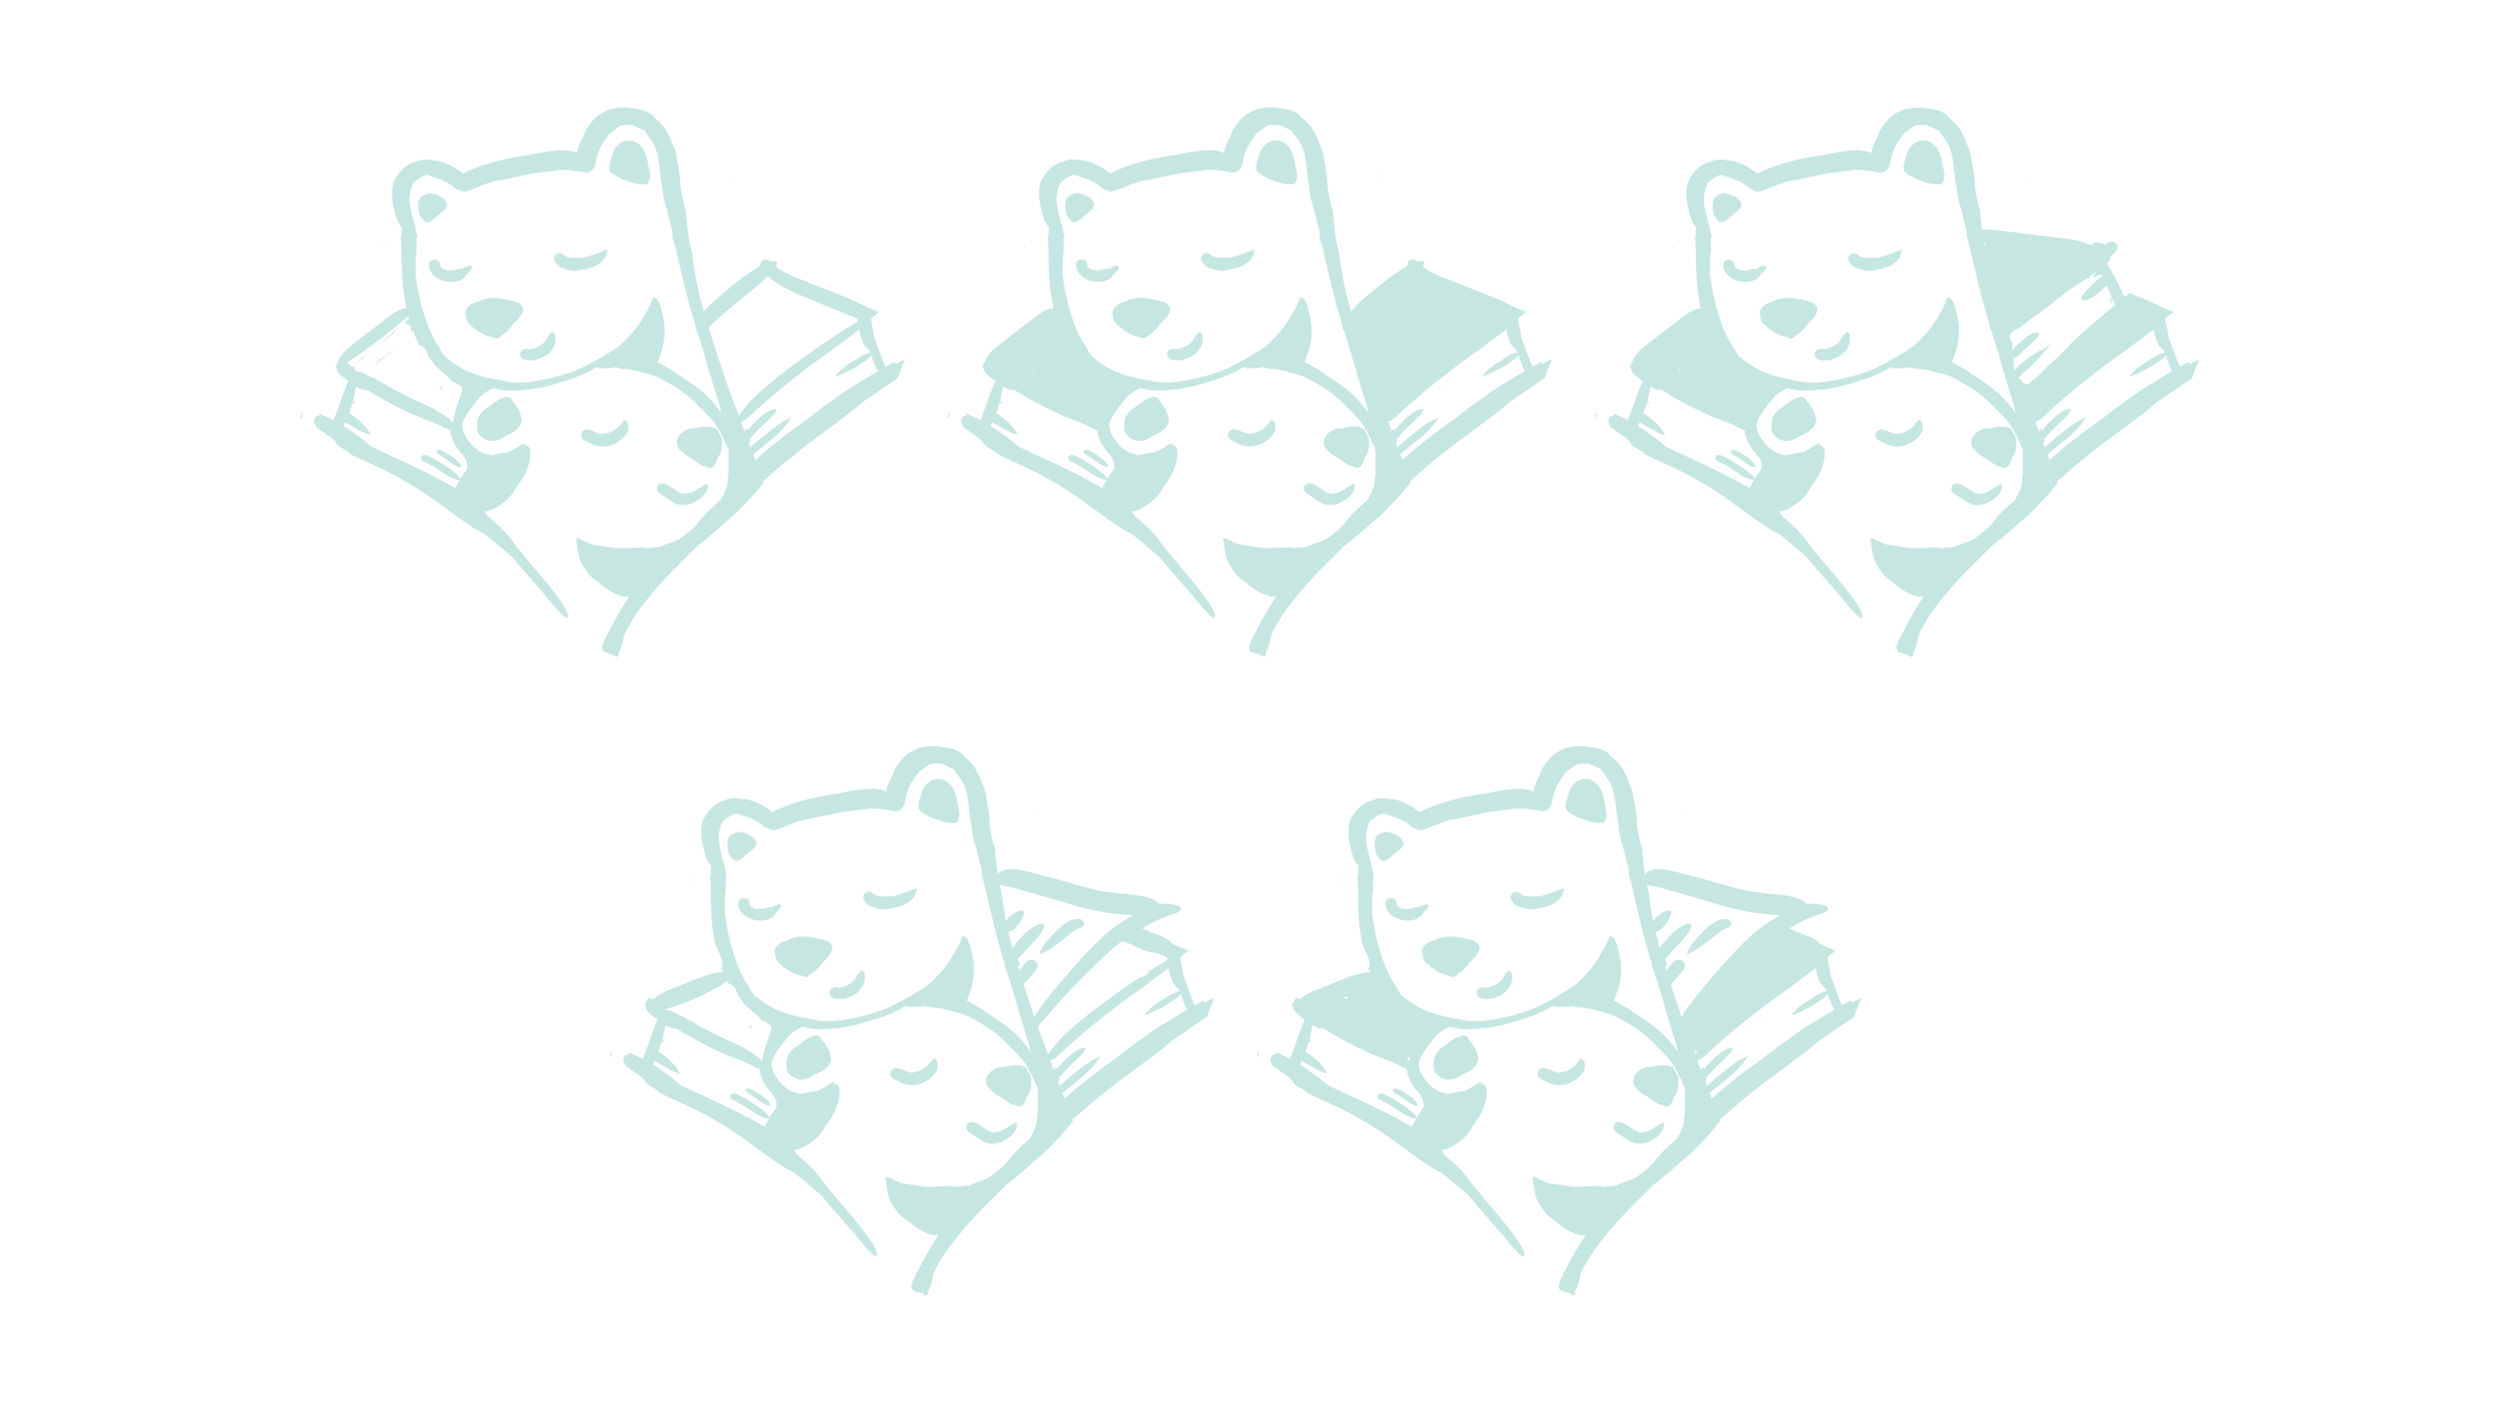 snugglewuggle_concepts4.png